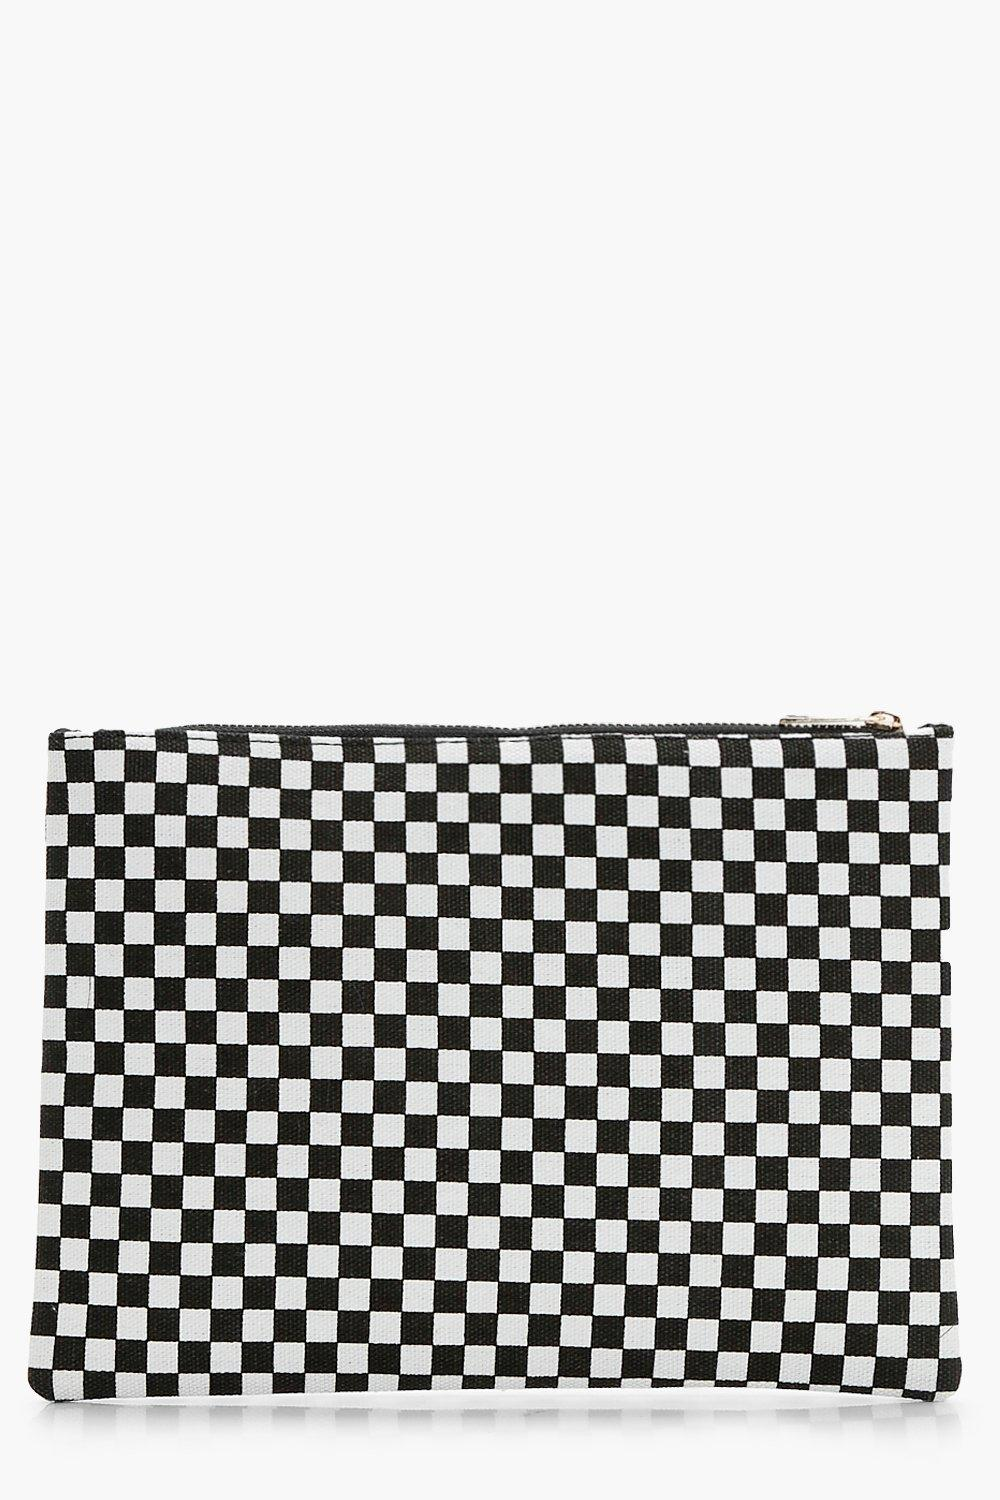 Check Zip Up Clutch - black - Gracie Check Zip Up